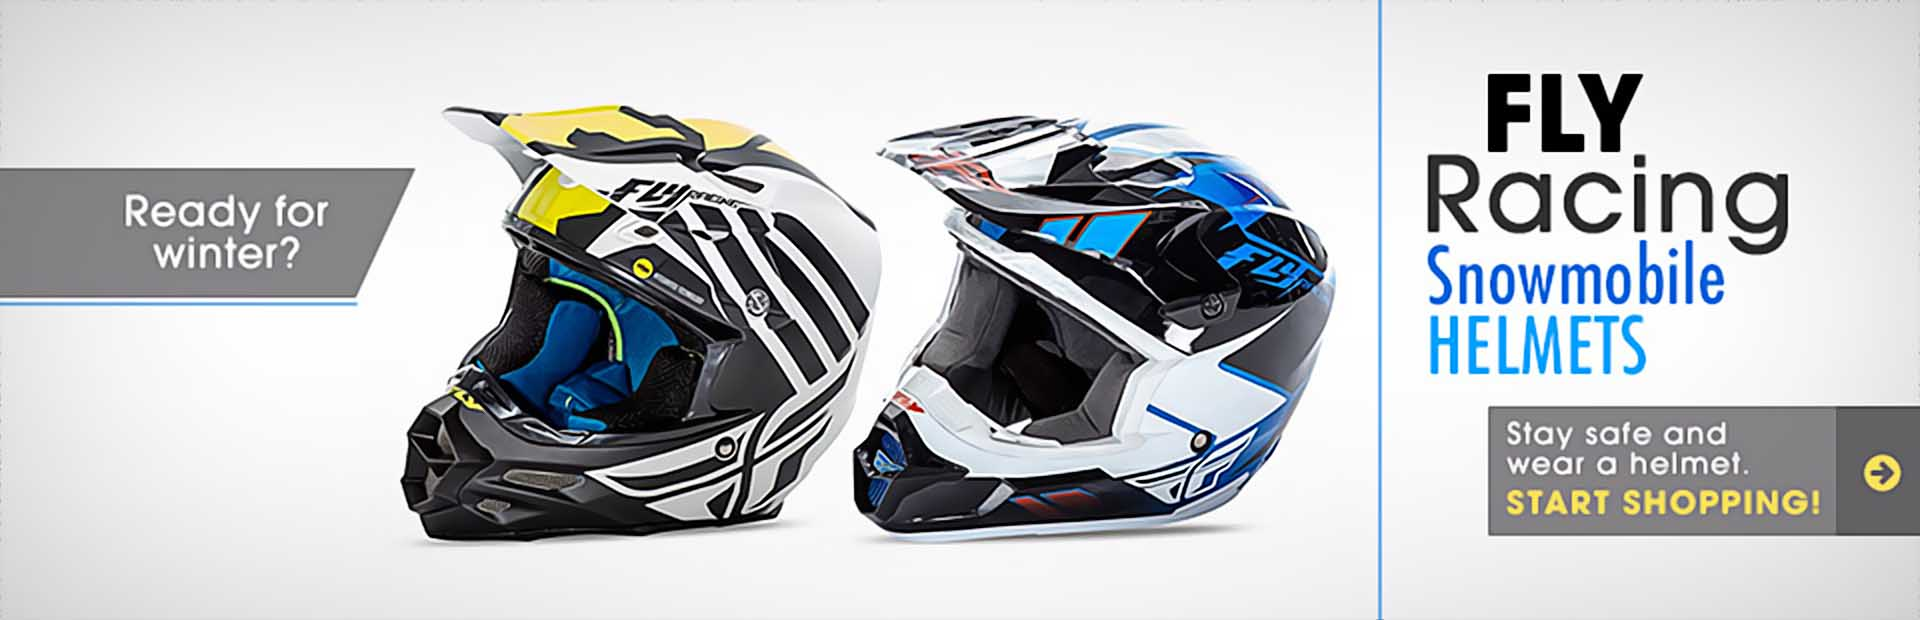 Fly Racing Snowmobile Helmets: Click here to shop online.